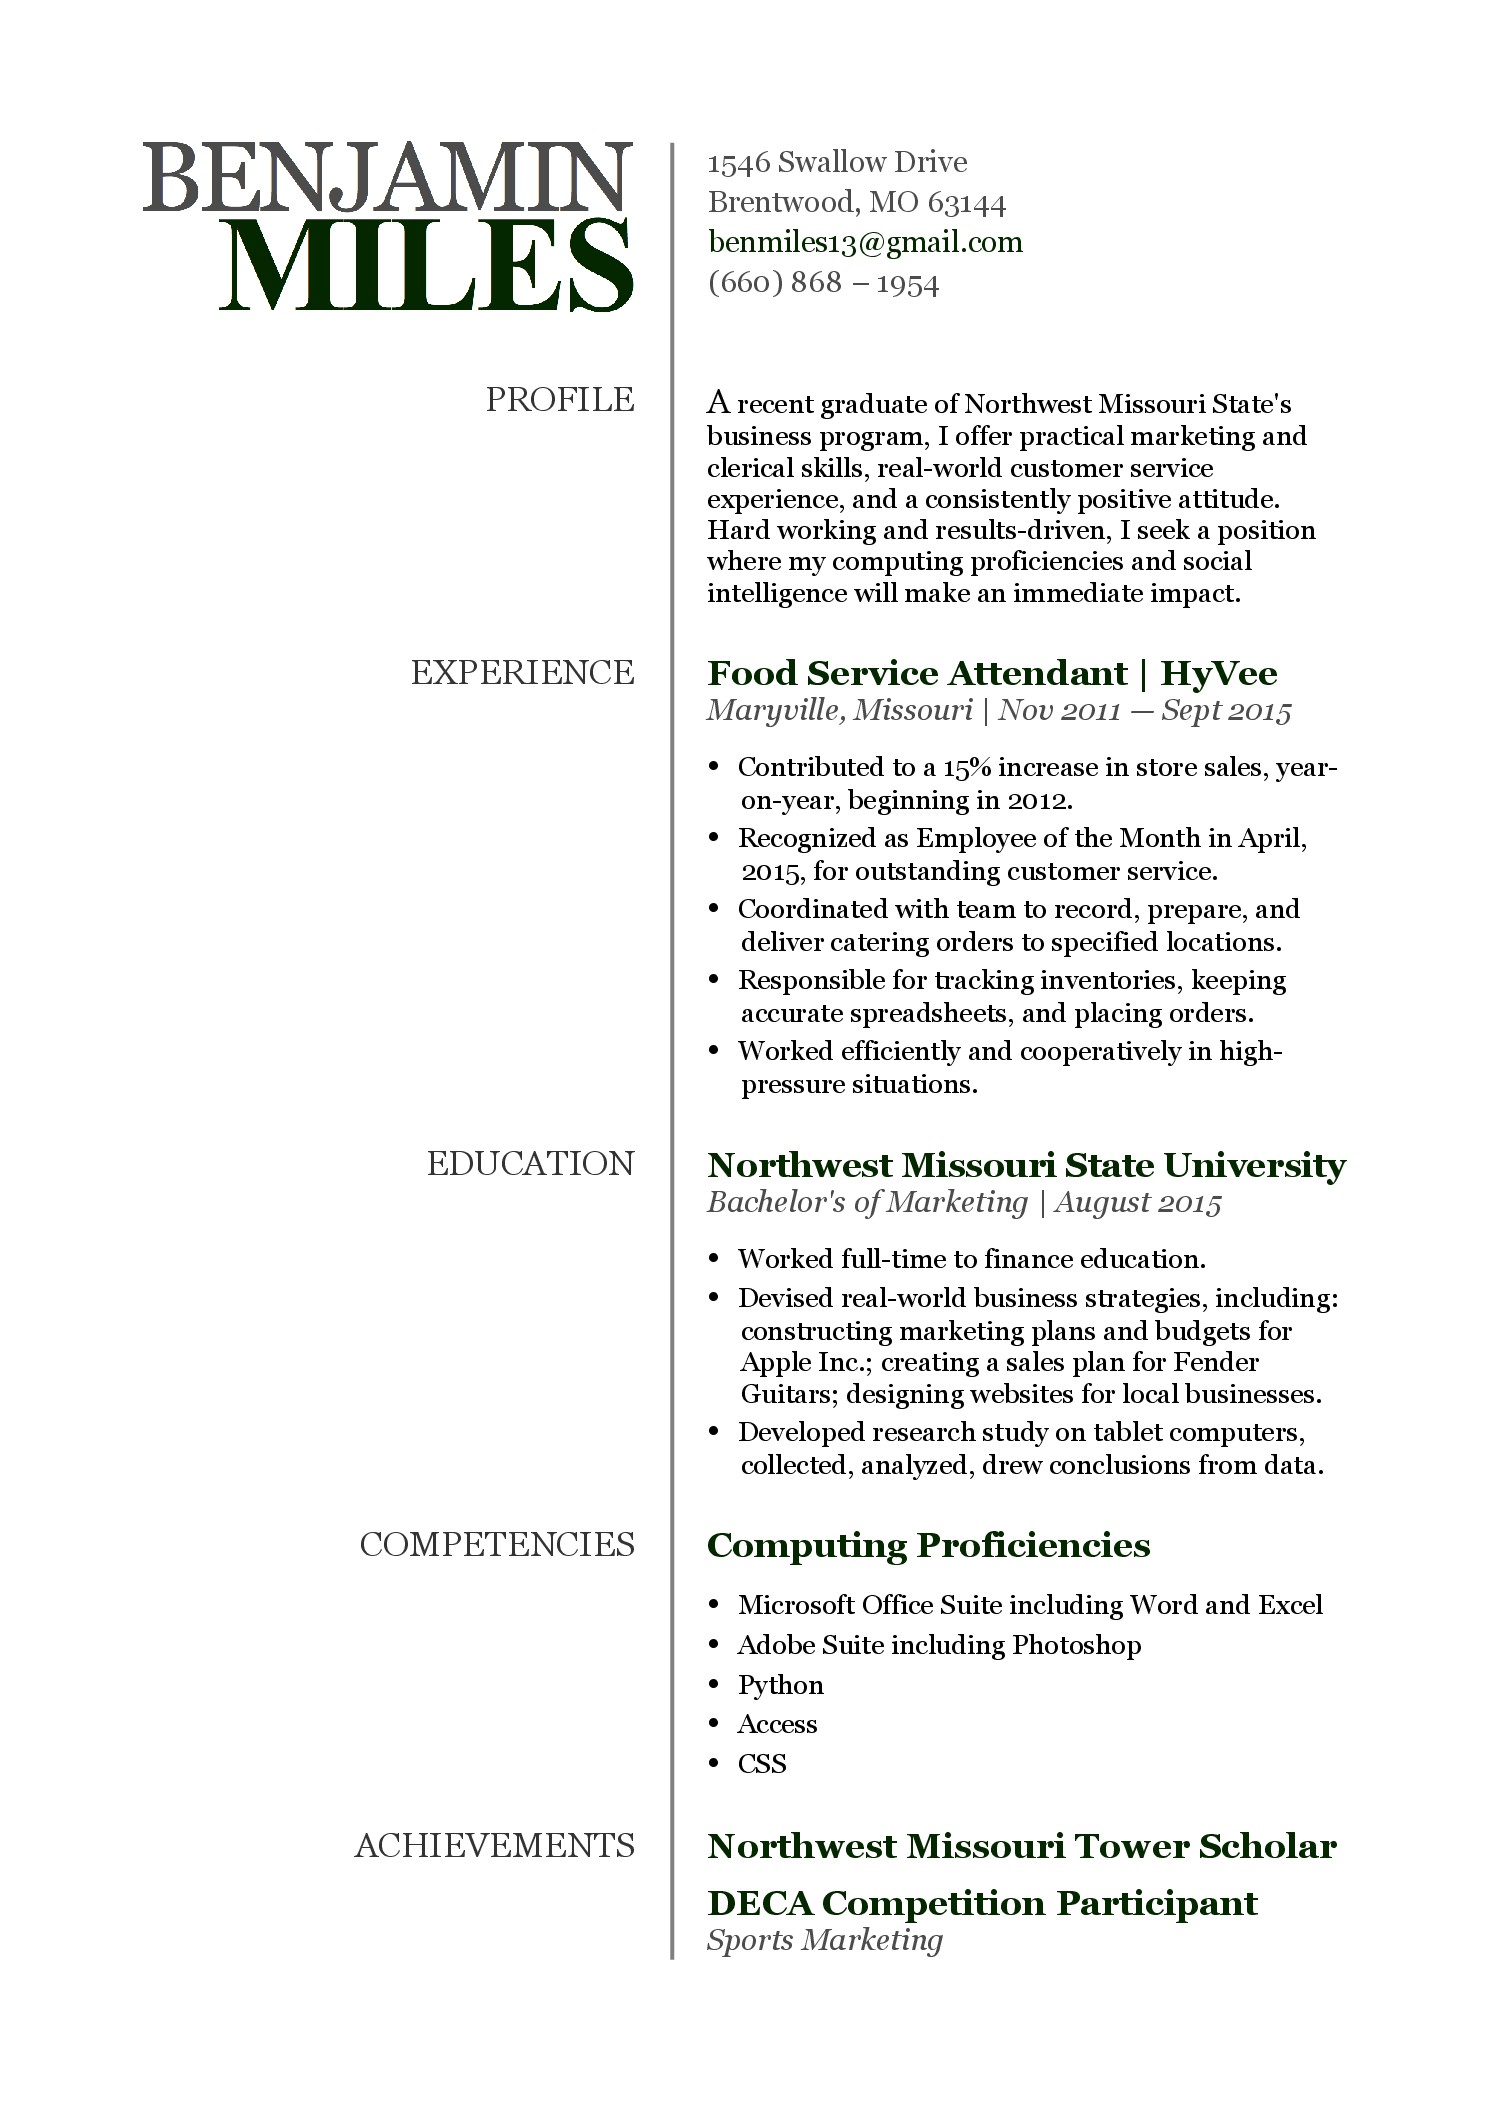 freelance resume examplesfreelance writer resume examplejpgcaption - Writer Editor Resume